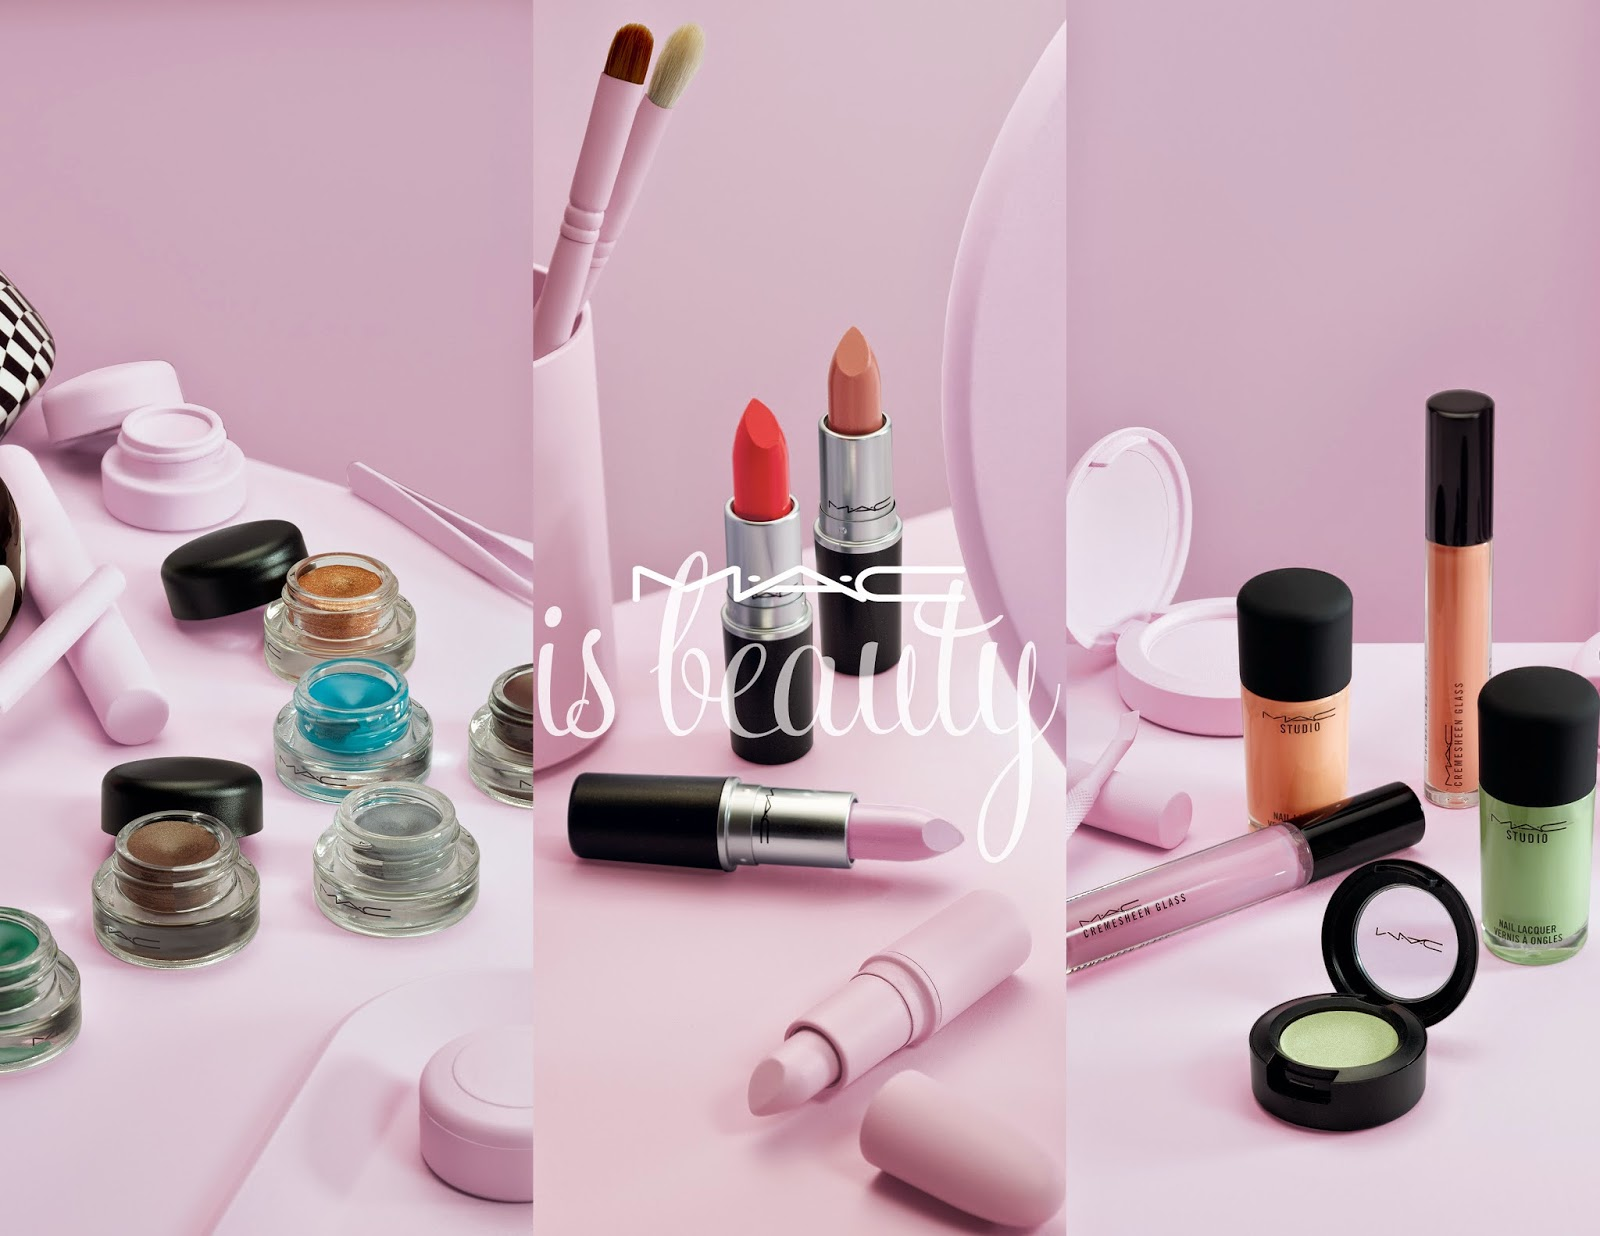 M∙A∙C Is Beauty Collection